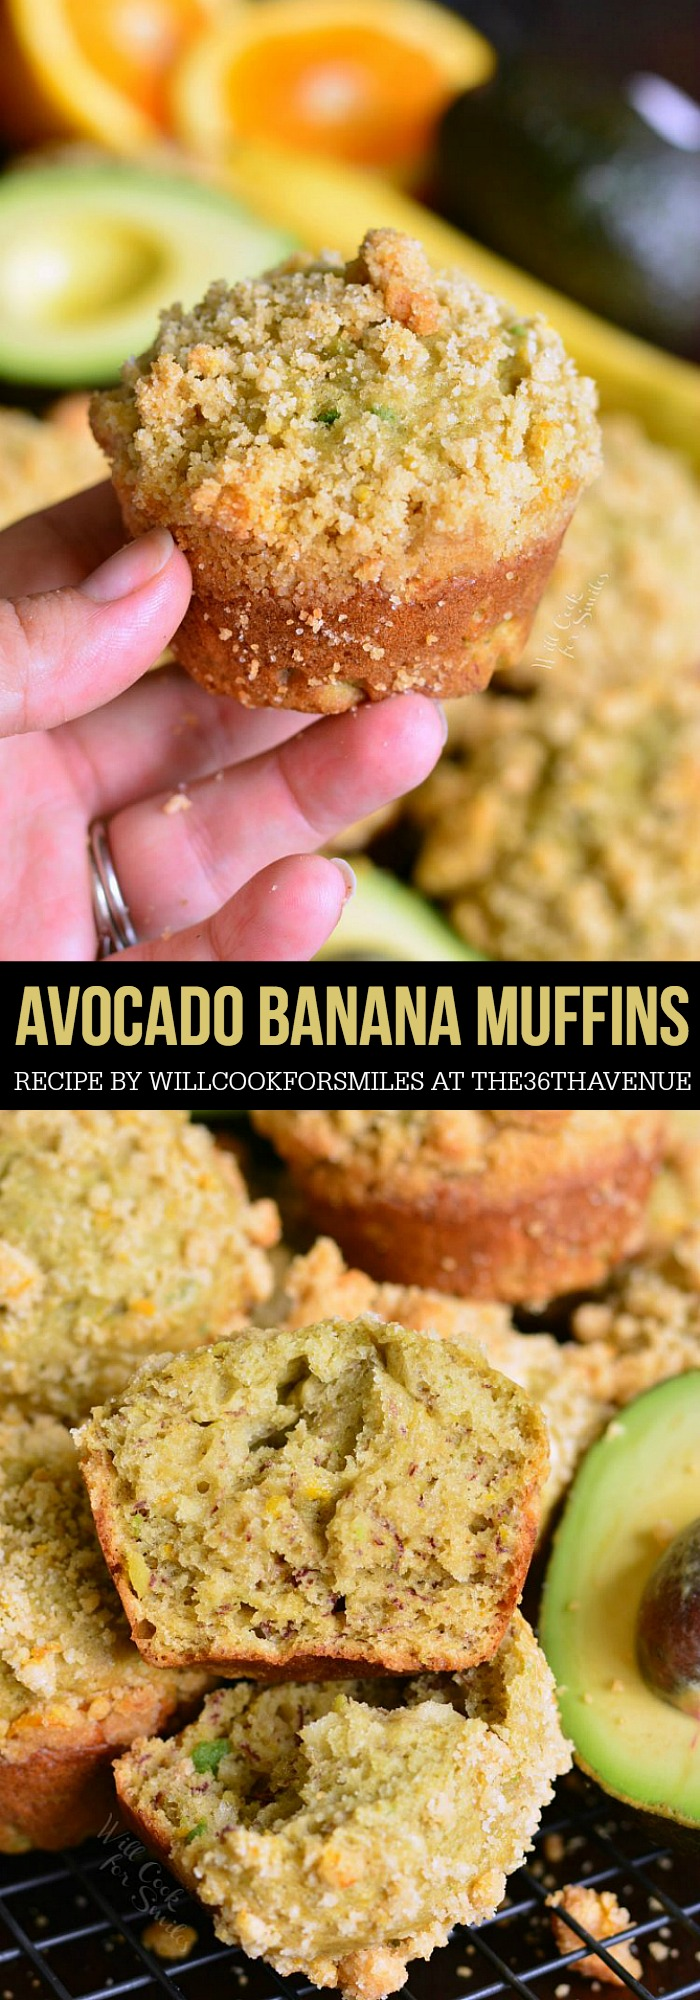 banana muffins made with an addition of avocado and orange essence. Avocado adds wonderful texture and health benefit to these muffins and the flavor combination is divine.